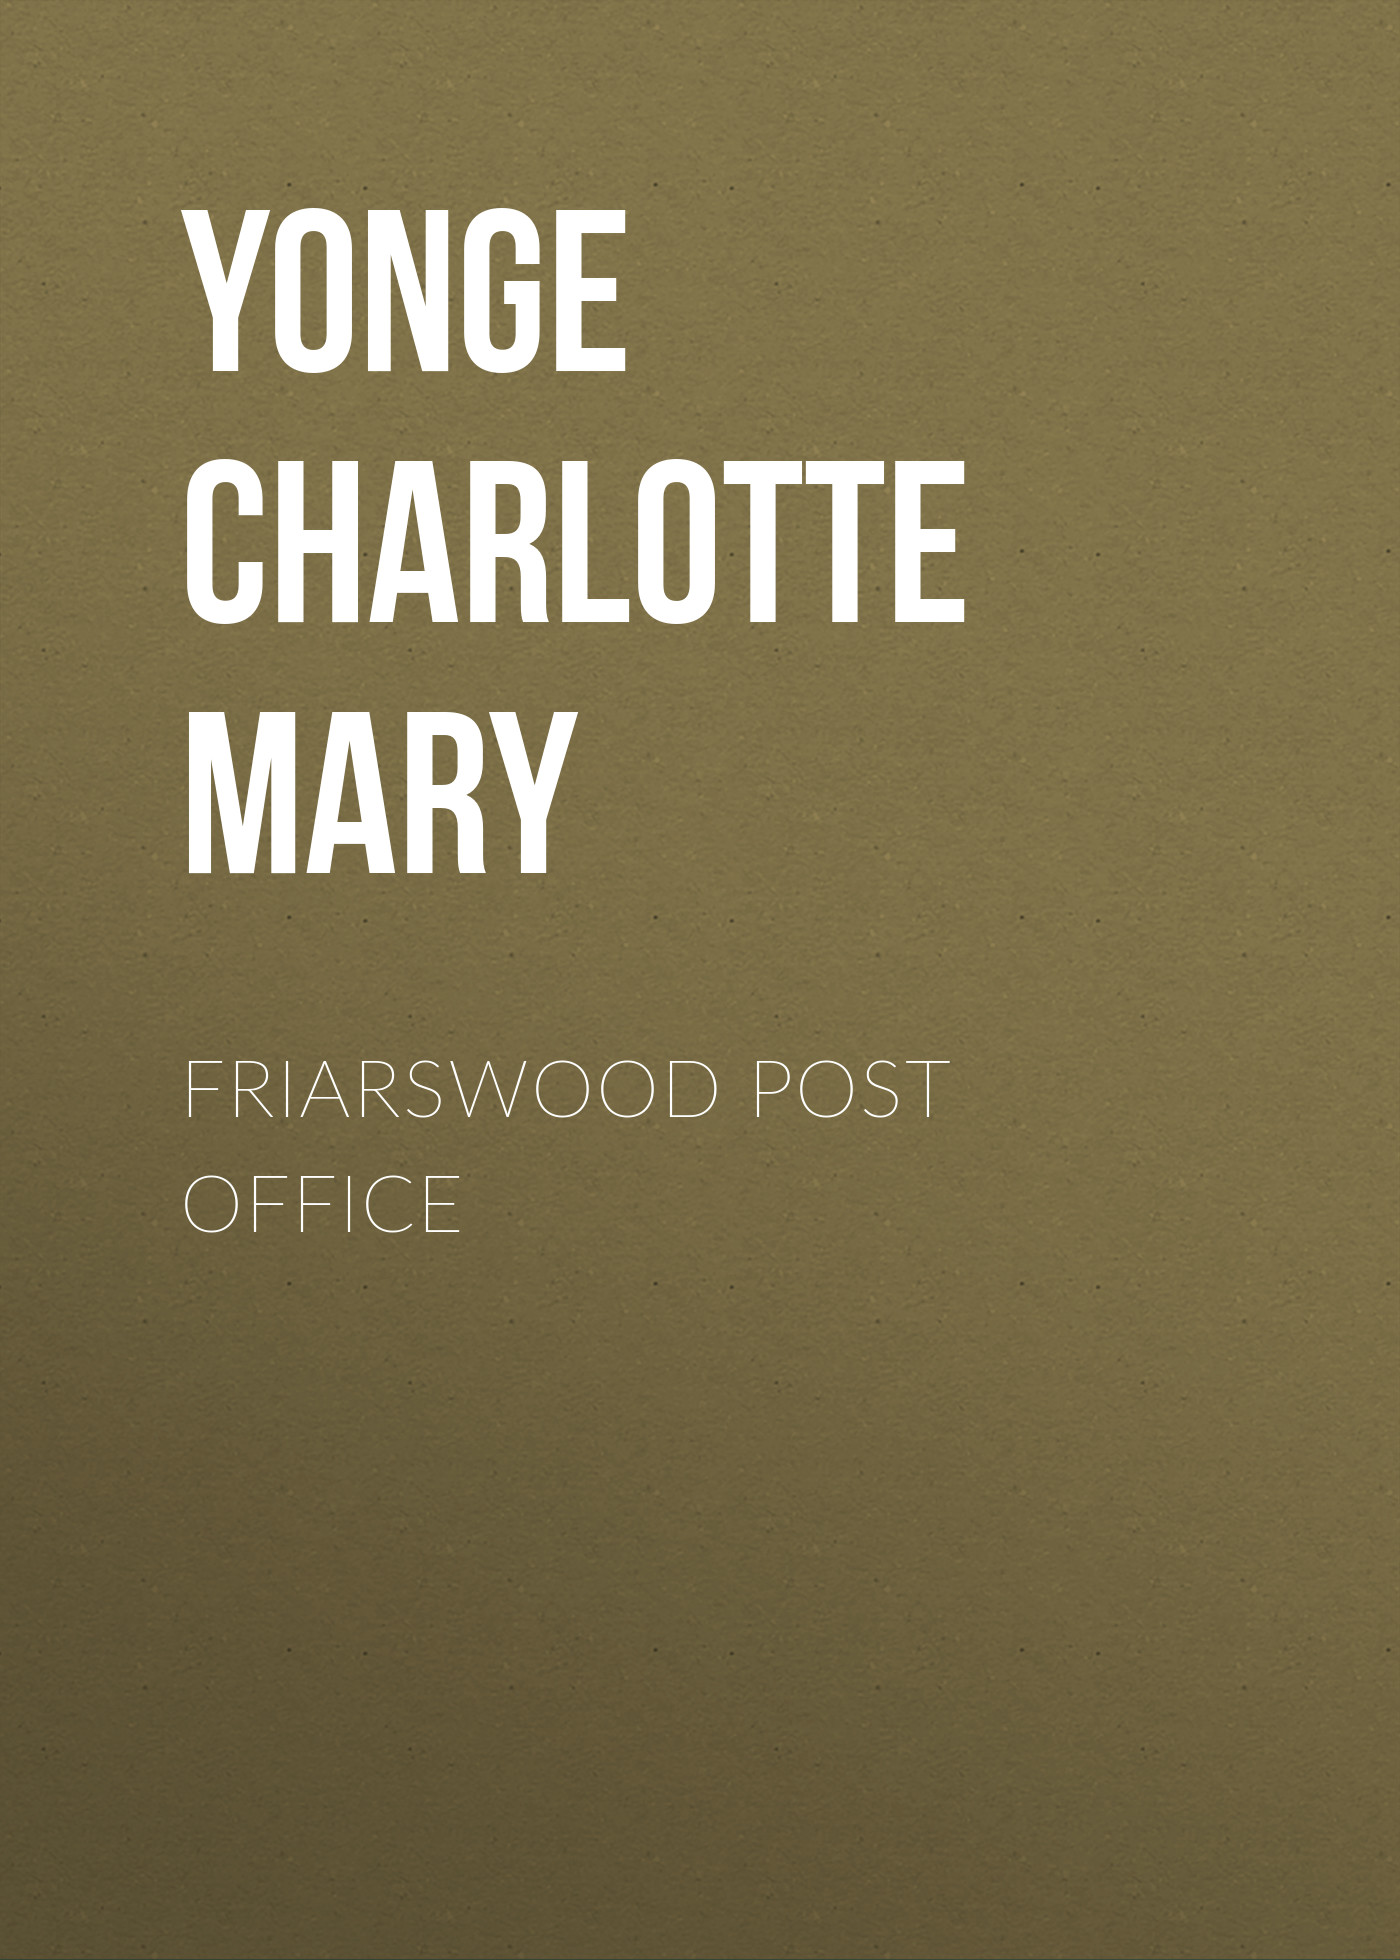 Yonge Charlotte Mary Friarswood Post Office yonge charlotte mary countess kate